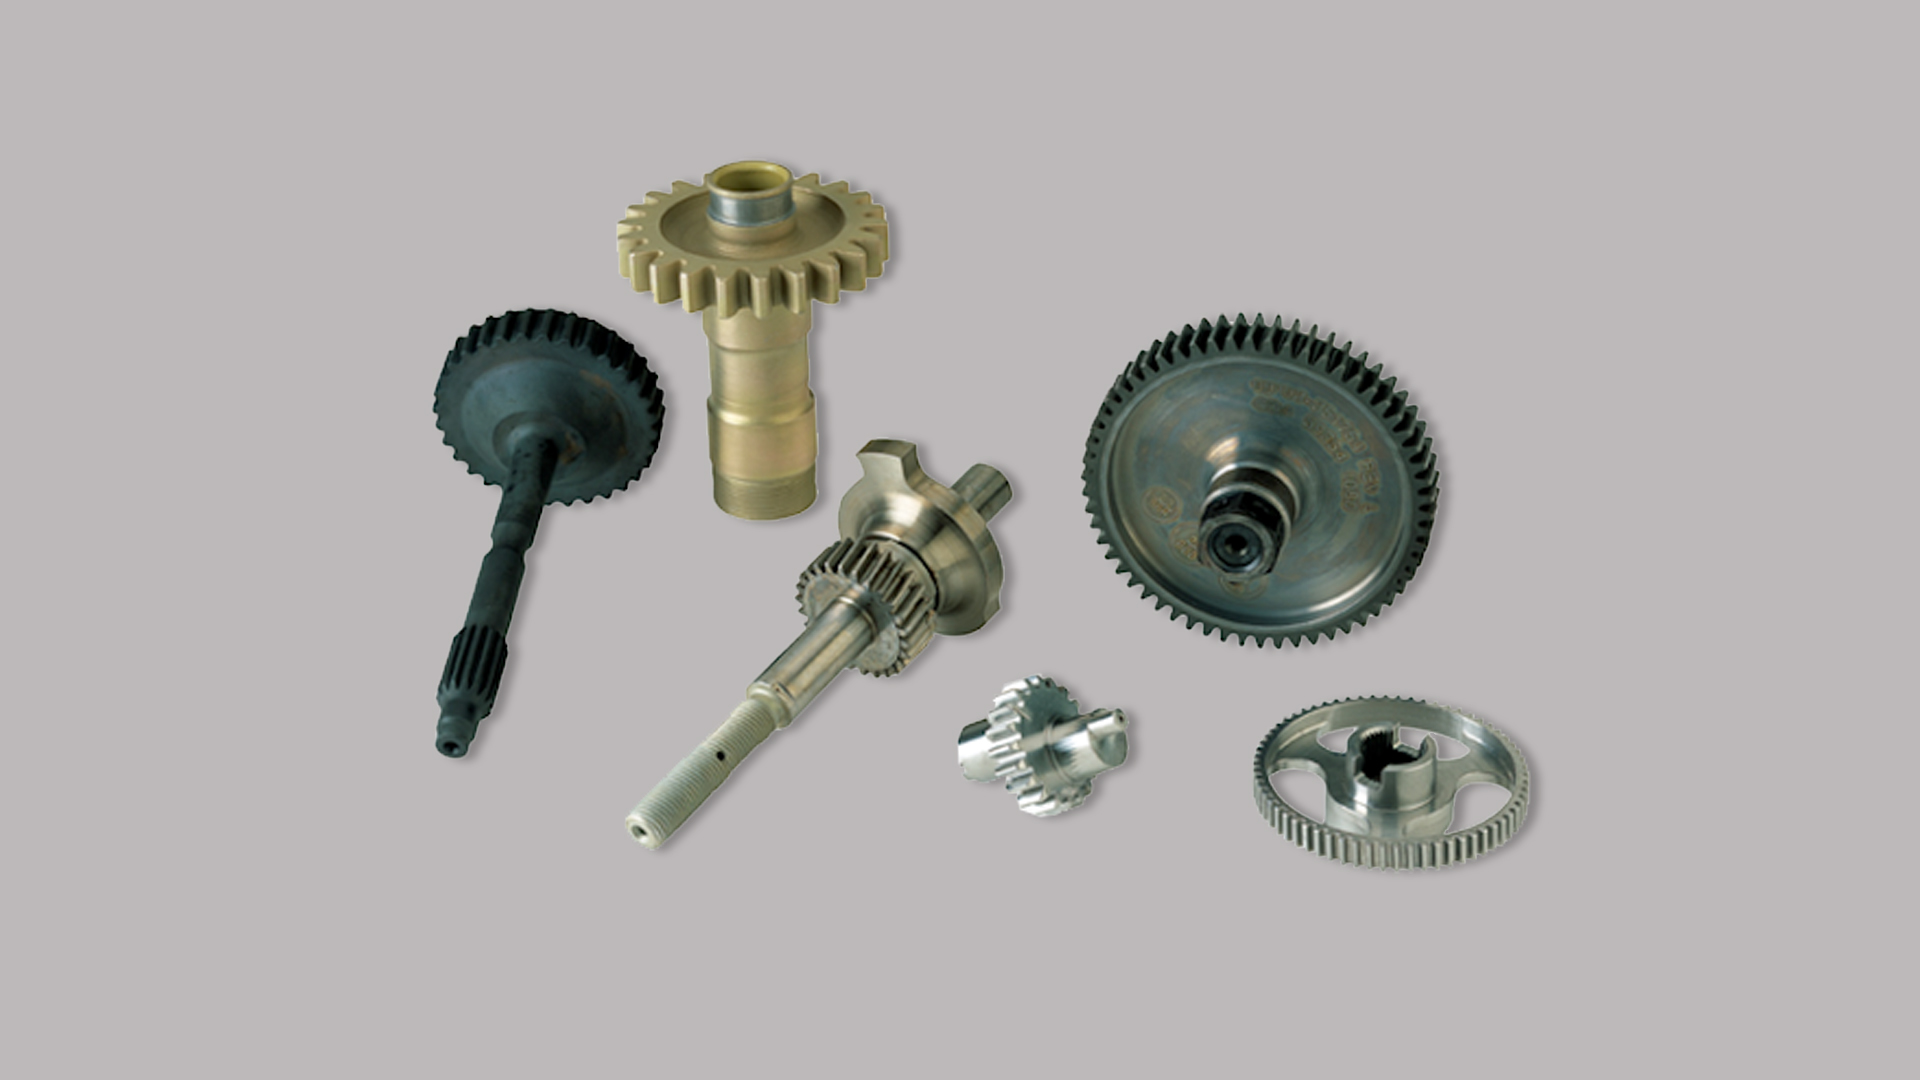 Gear shafts